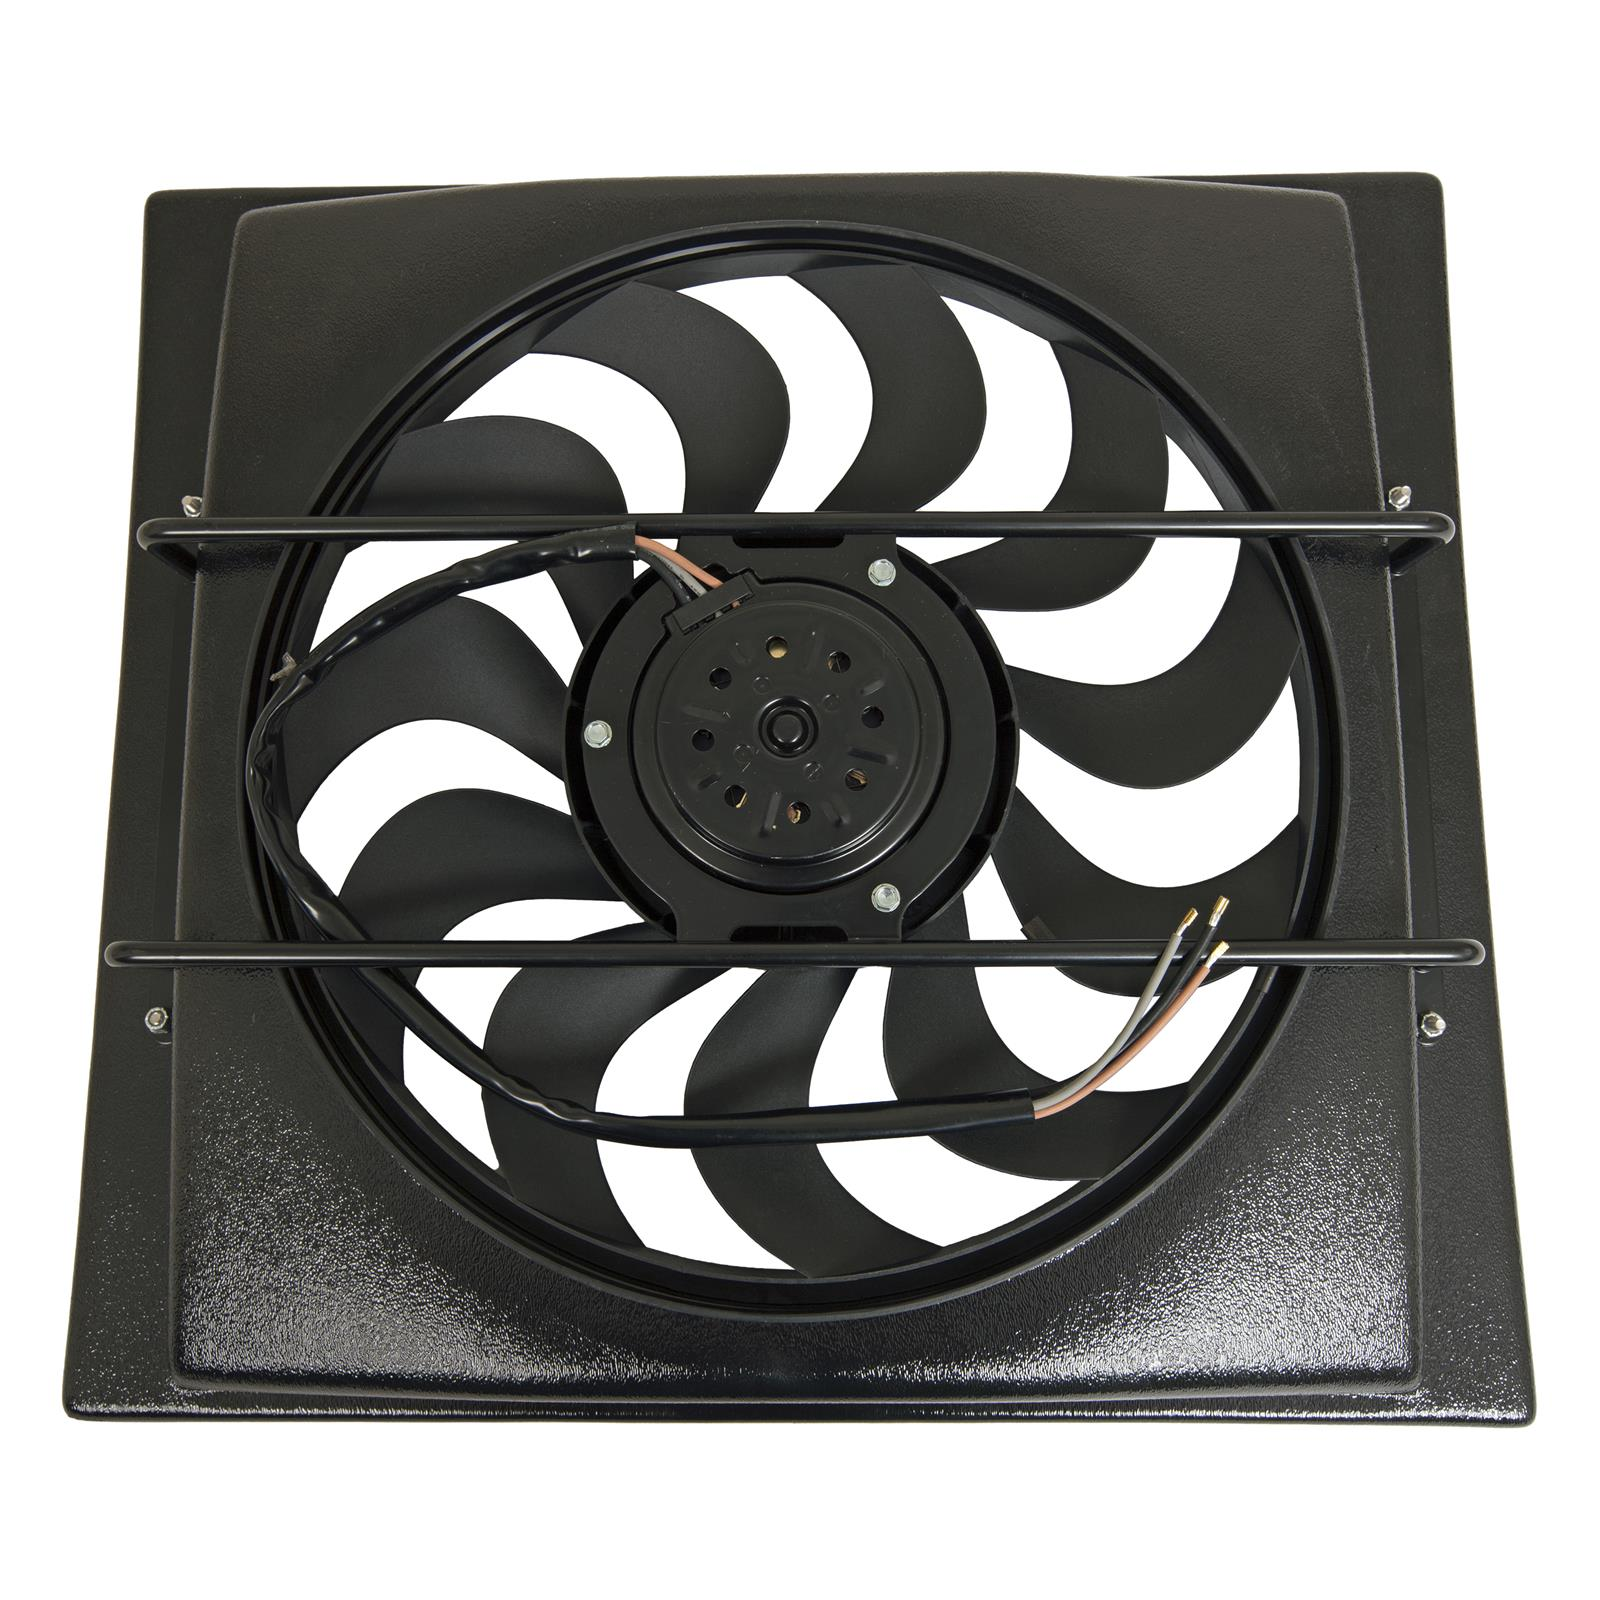 hight resolution of vintage air electric cooling fans 280473 free shipping on orders over 99 at summit racing